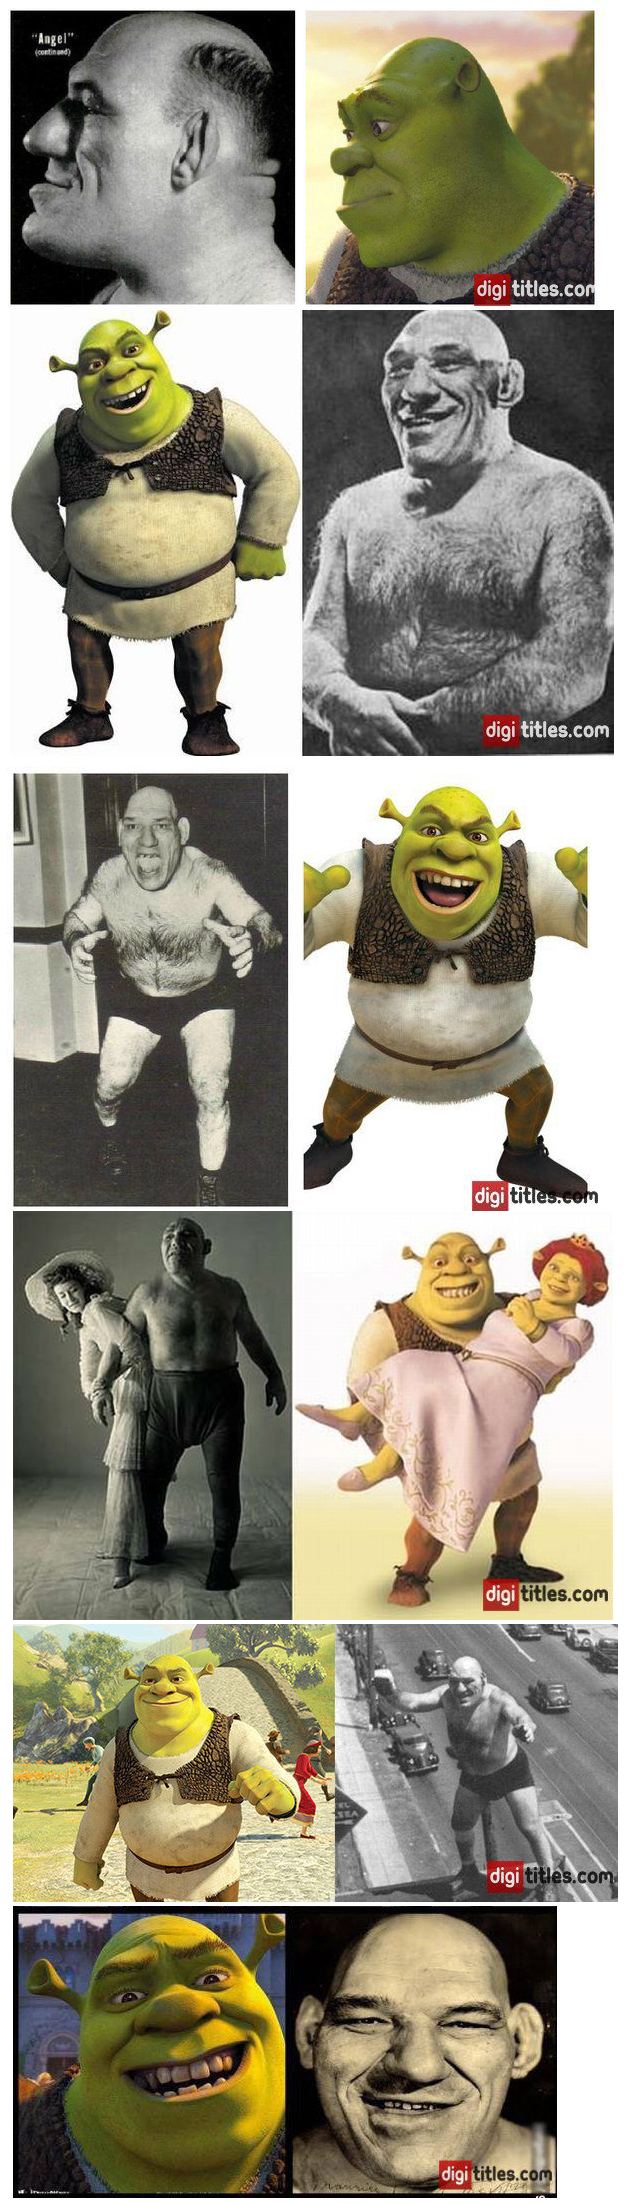 maurice is life, maurice is love. it seems our beloved shrek may be based on a real life person, details: .. Looks like he didn't check himself